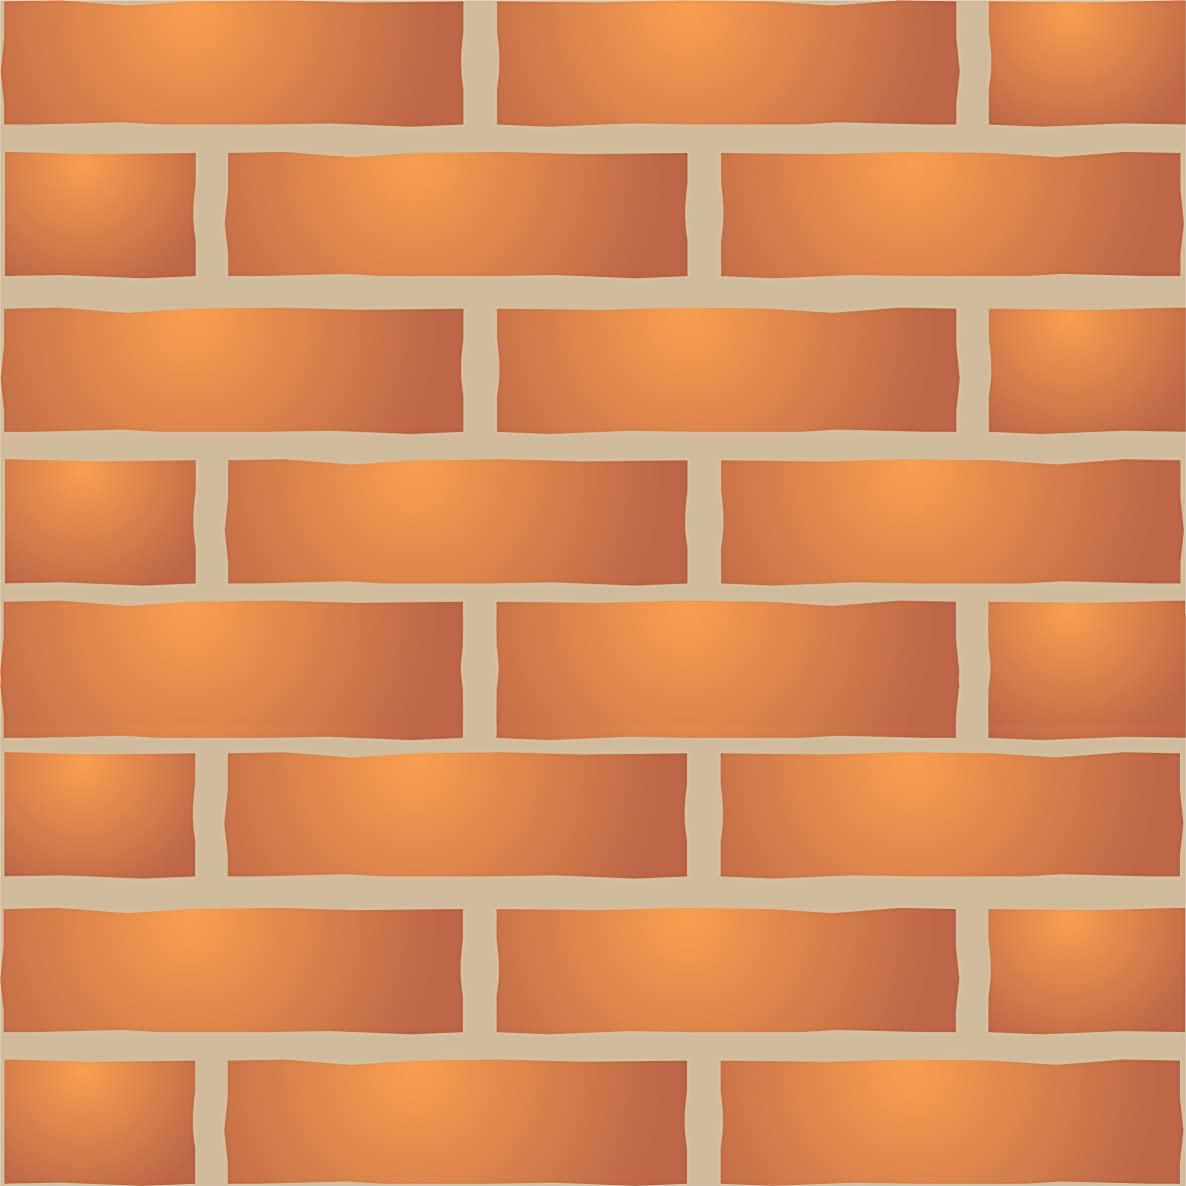 """Brick Wall Stencil (size 10""""w x 6.5""""h) Reusable Wall Stencils for Painting - Best Quality Brick Wall Stencil Ideas - Use on Walls, Floors, Fabrics, Glass, Wood, Terracotta, and More…"""